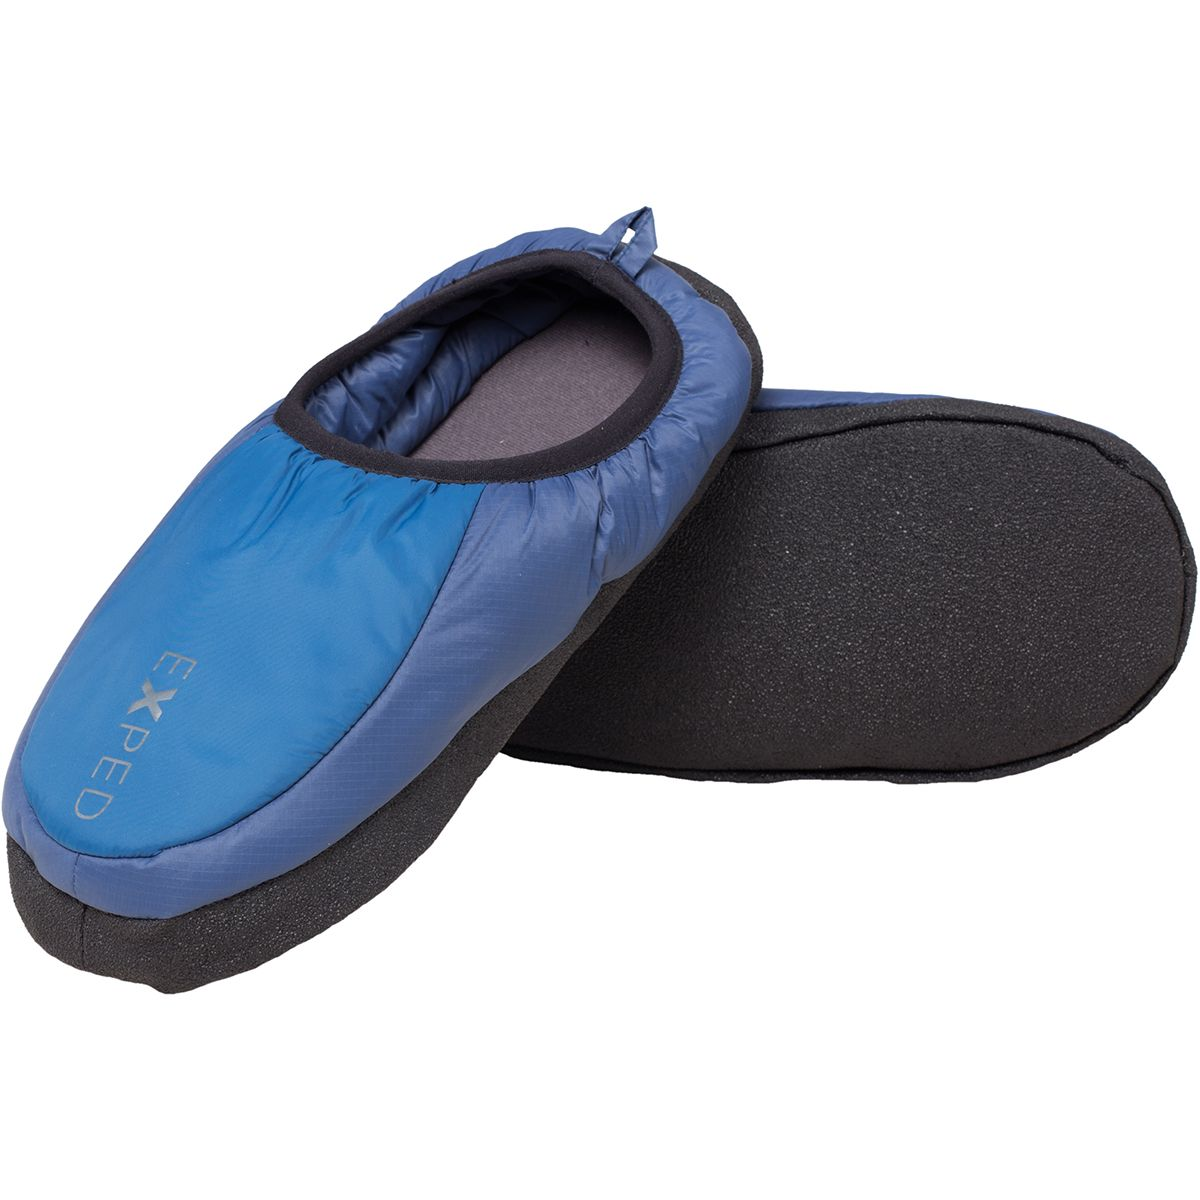 Exped Camp Slipper Hausschuhe Blau